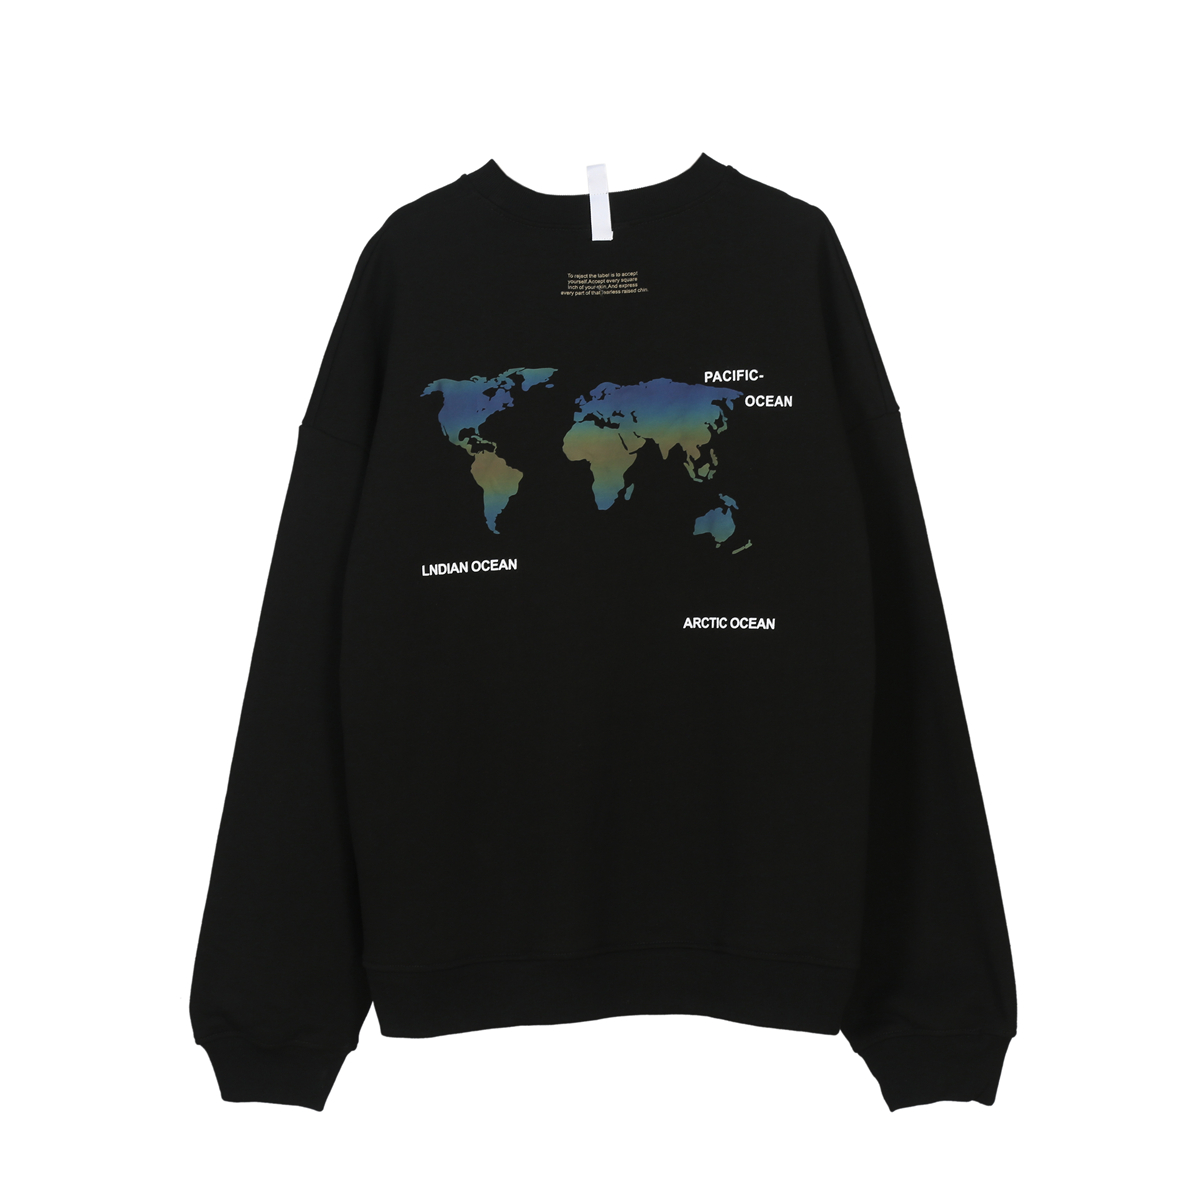 CoooColl New 19FW WORLD TOUR SWEATSHIRT Fashion Casual 3M cotton Hip Hop Loose Streetwear mens women tops Oversized Hiphop in Hoodies amp Sweatshirts from Men 39 s Clothing